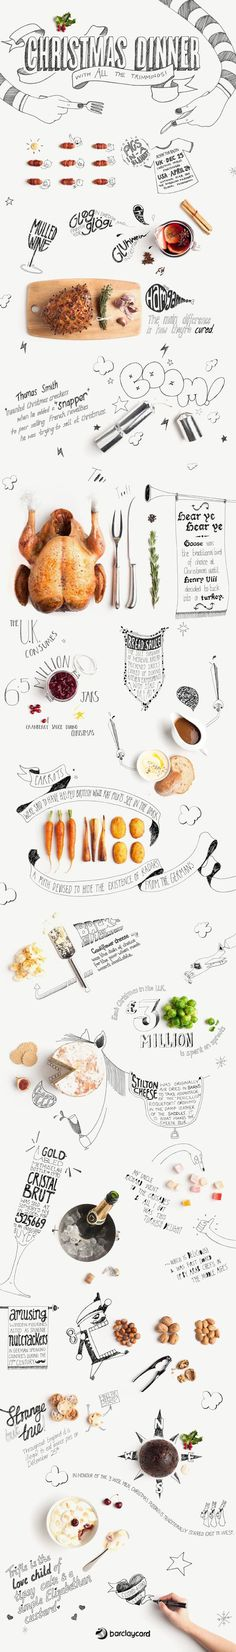 Barclays Card Christmas Infographic #infographic #photography #handwriting #food